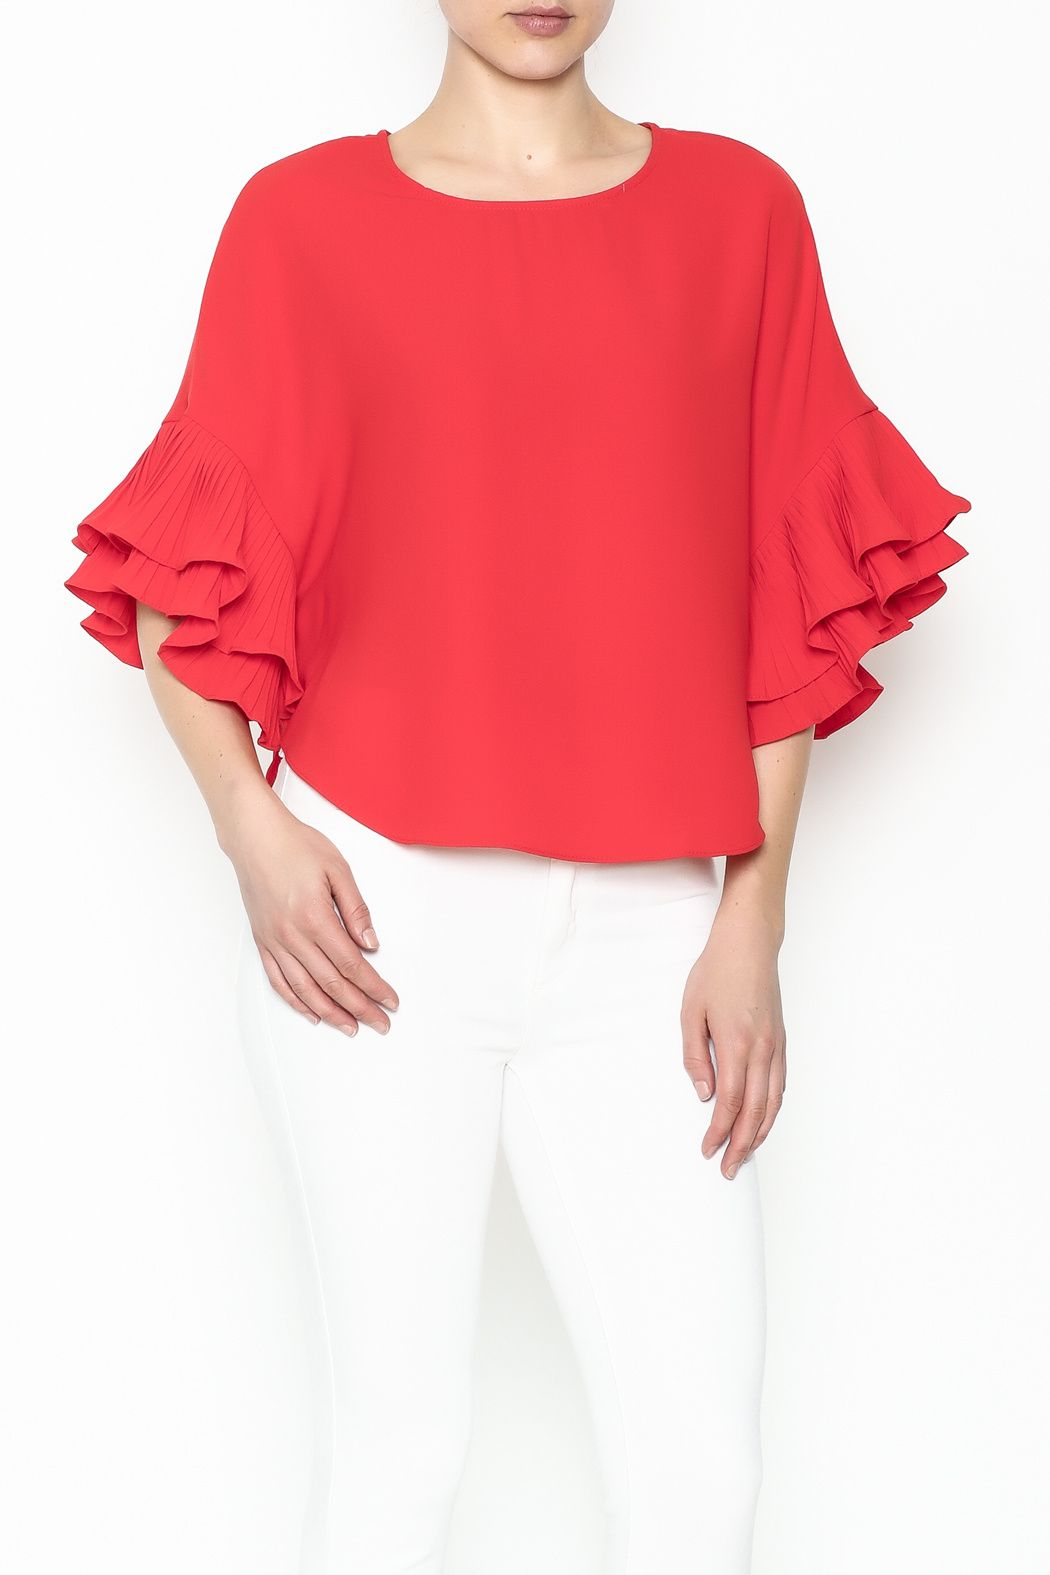 Solid color bell sleeve red top. Bell Sleeve Top by cq by cq. Clothing -  Tops - Blouses & Shirts Brooklyn, New York City New York City